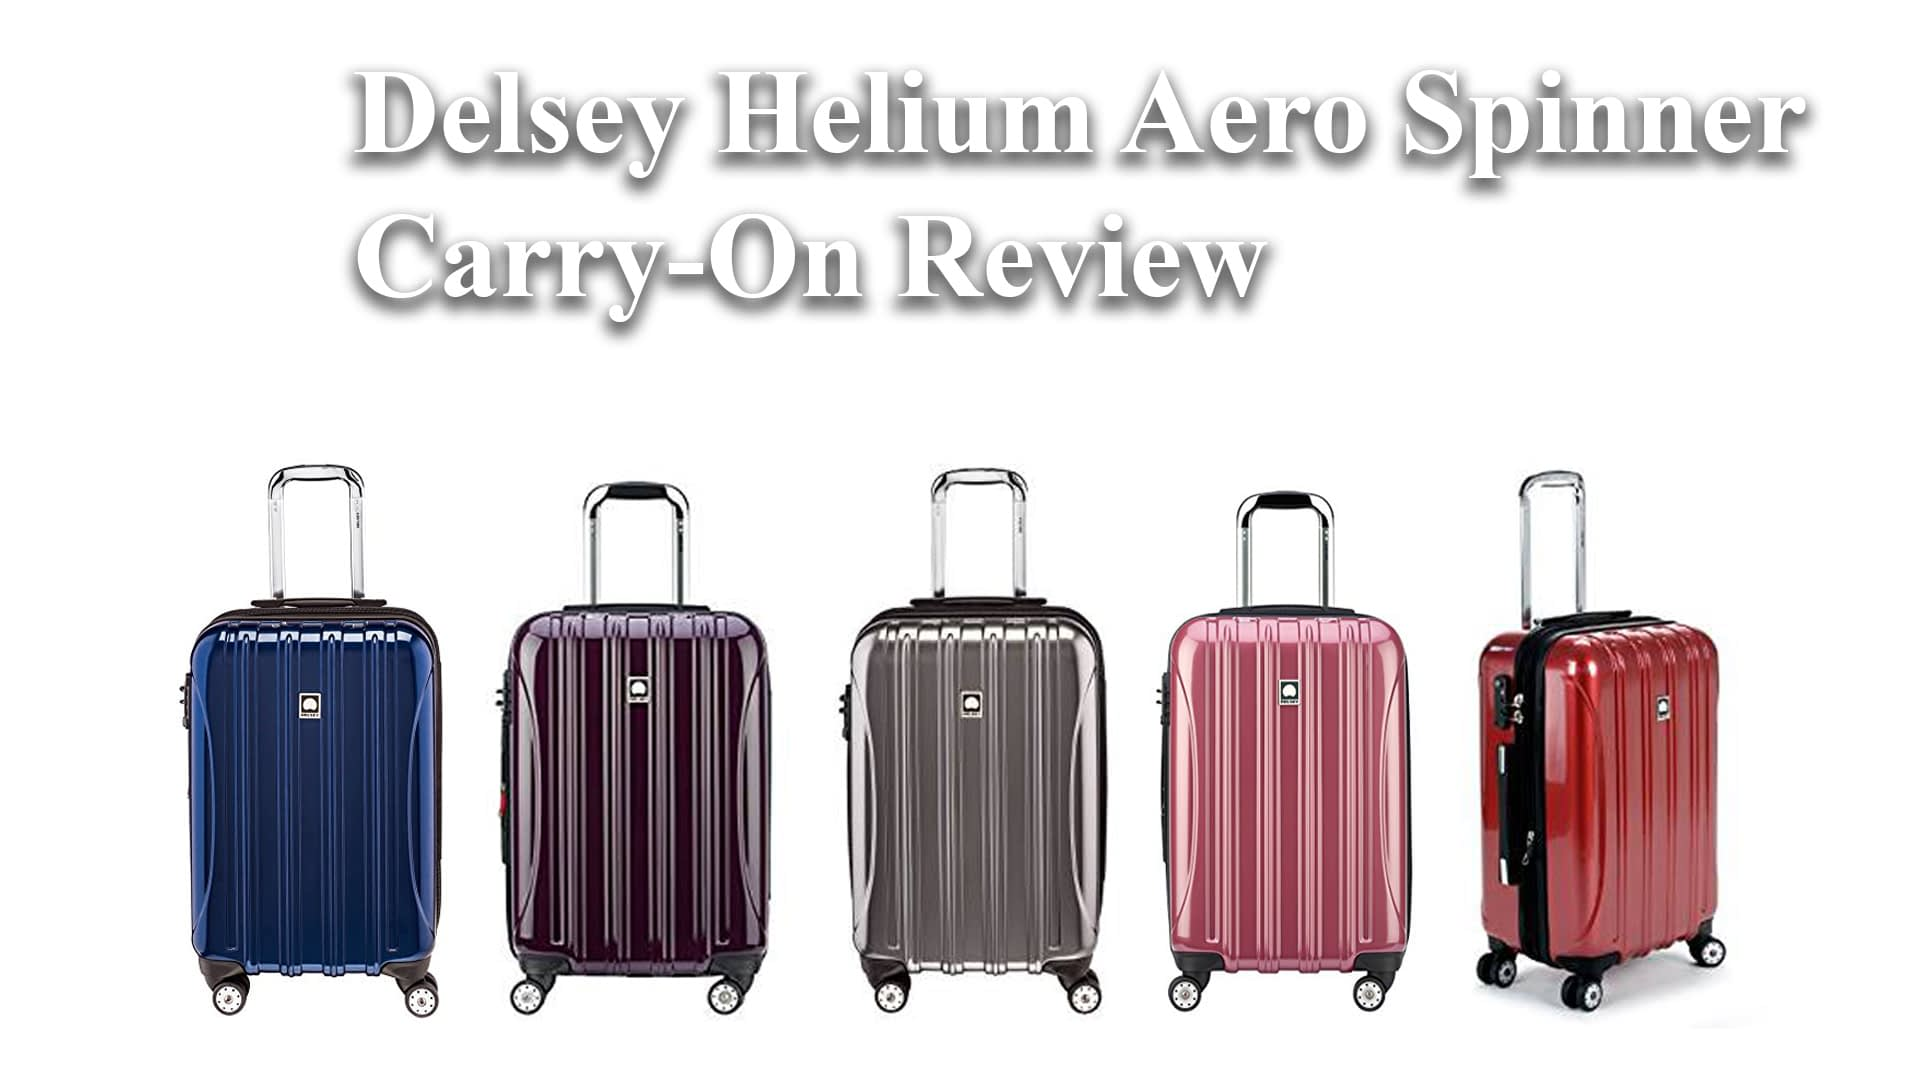 Delsey Helium Aero Spinner Carry-on Review